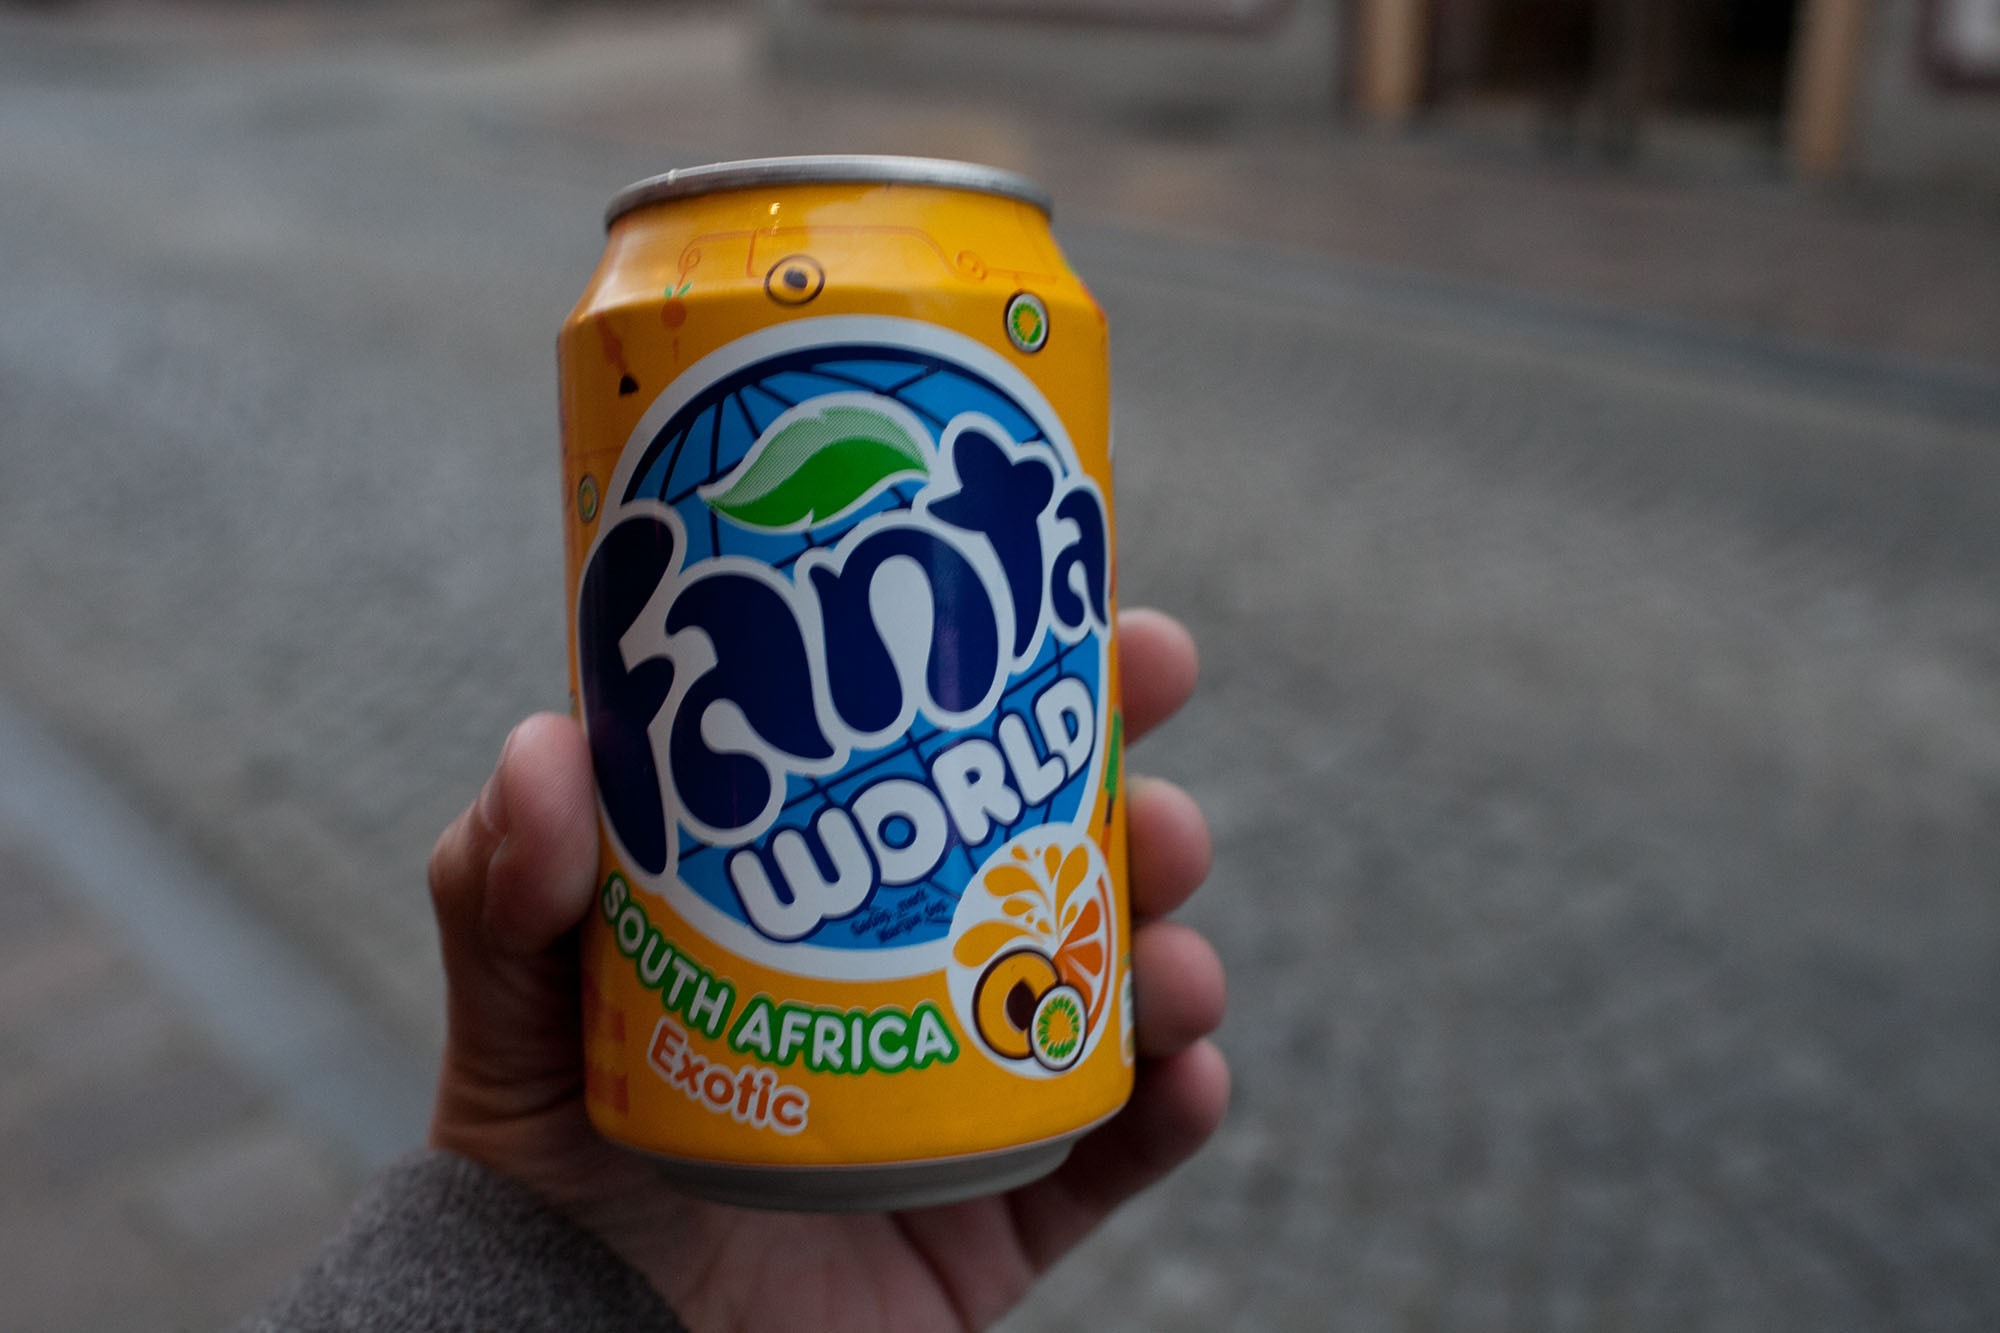 South Africa flavored Fanta in Bruges, Belgium